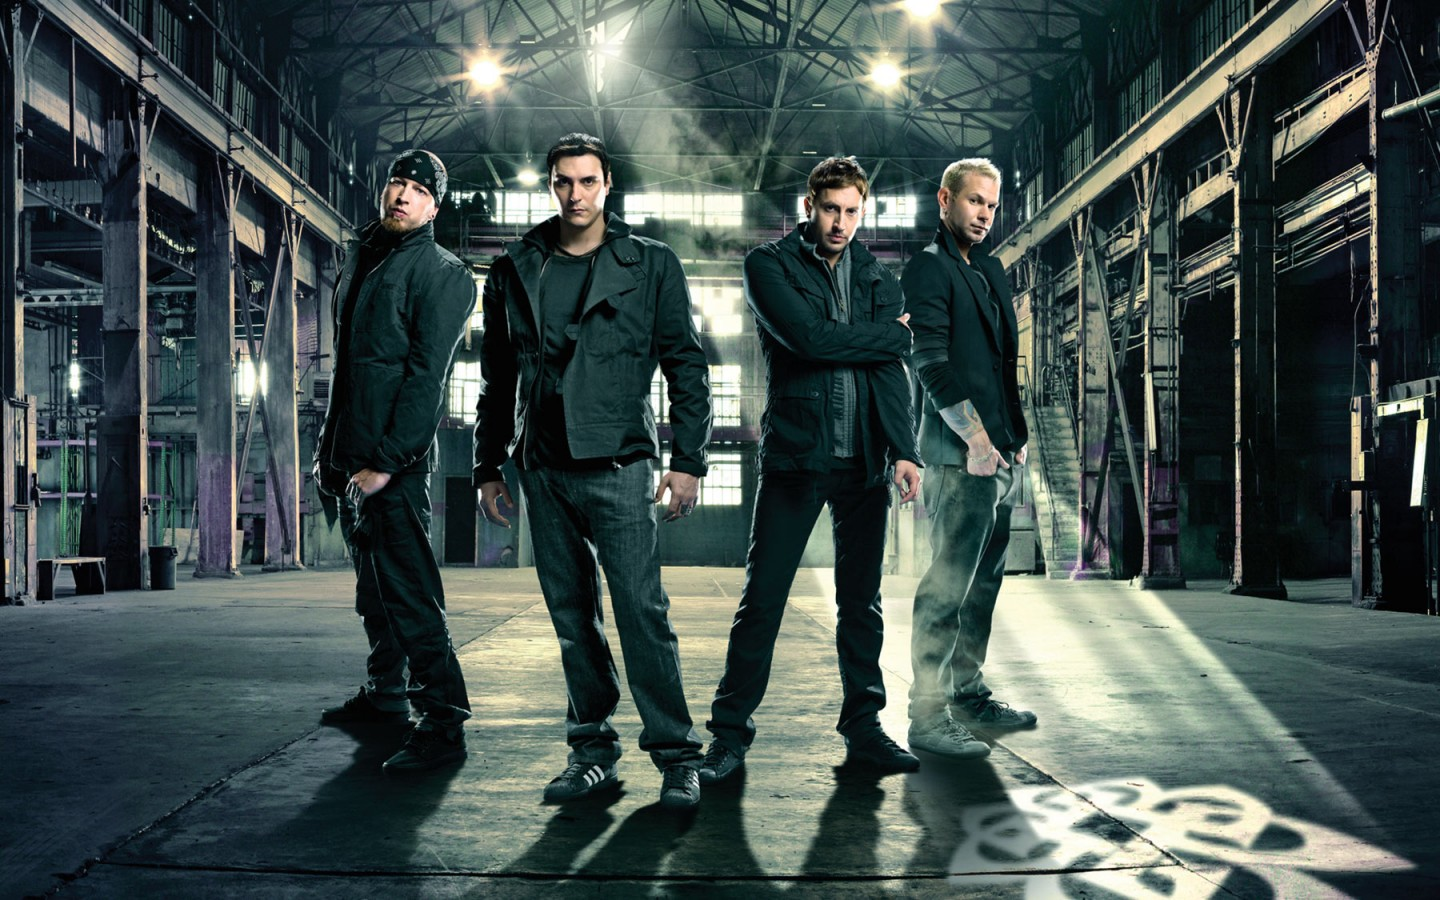 Avenged Sevenfold Iphone Wallpaper Breaking Benjamin Wallpapers High Quality Download Free